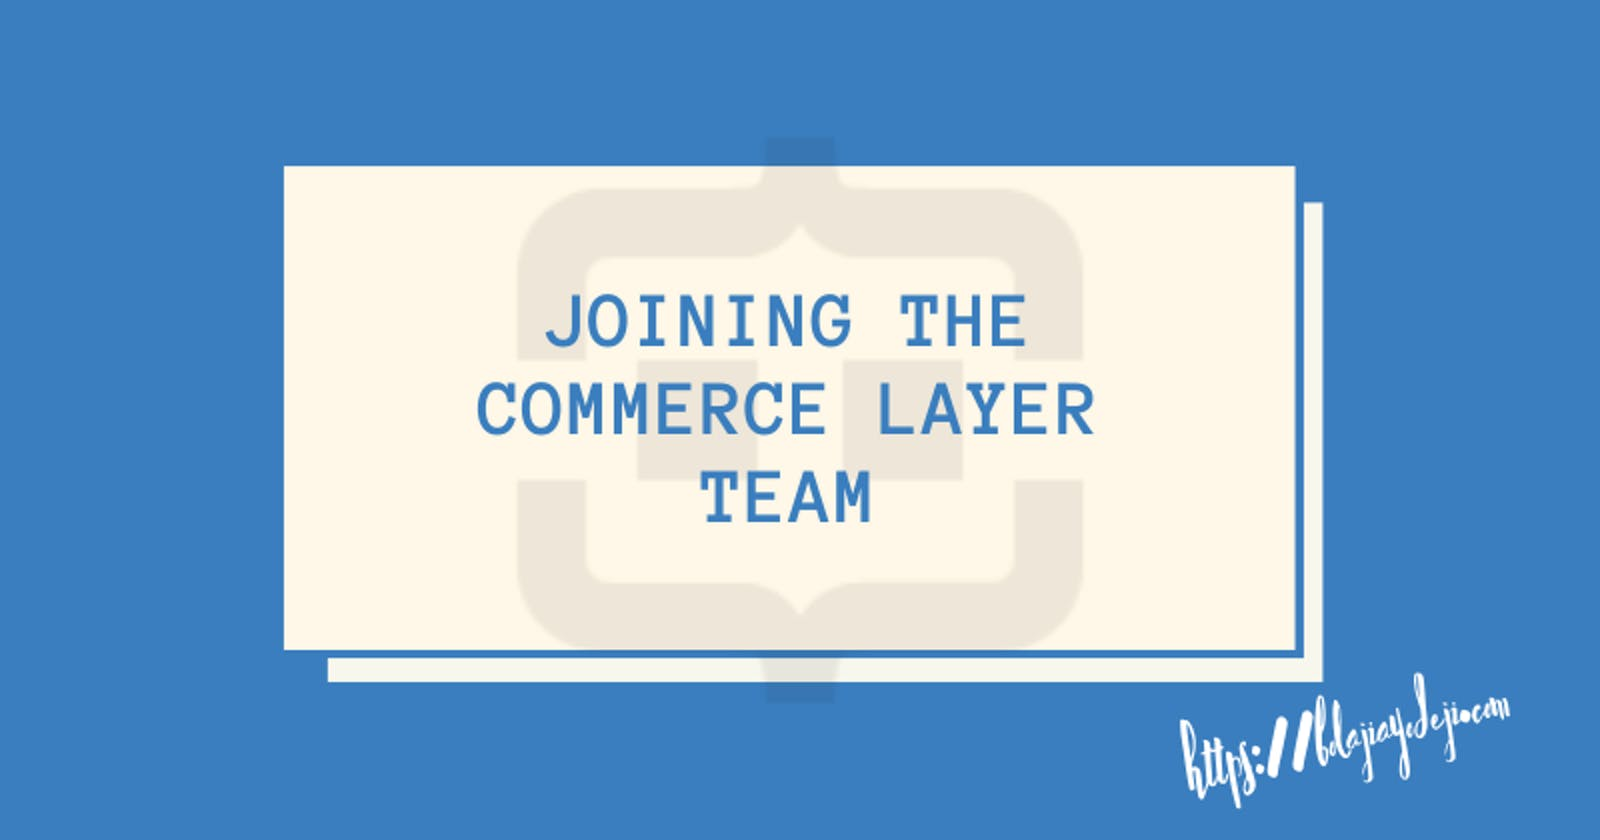 Career Update: Joining the Commerce Layer Team